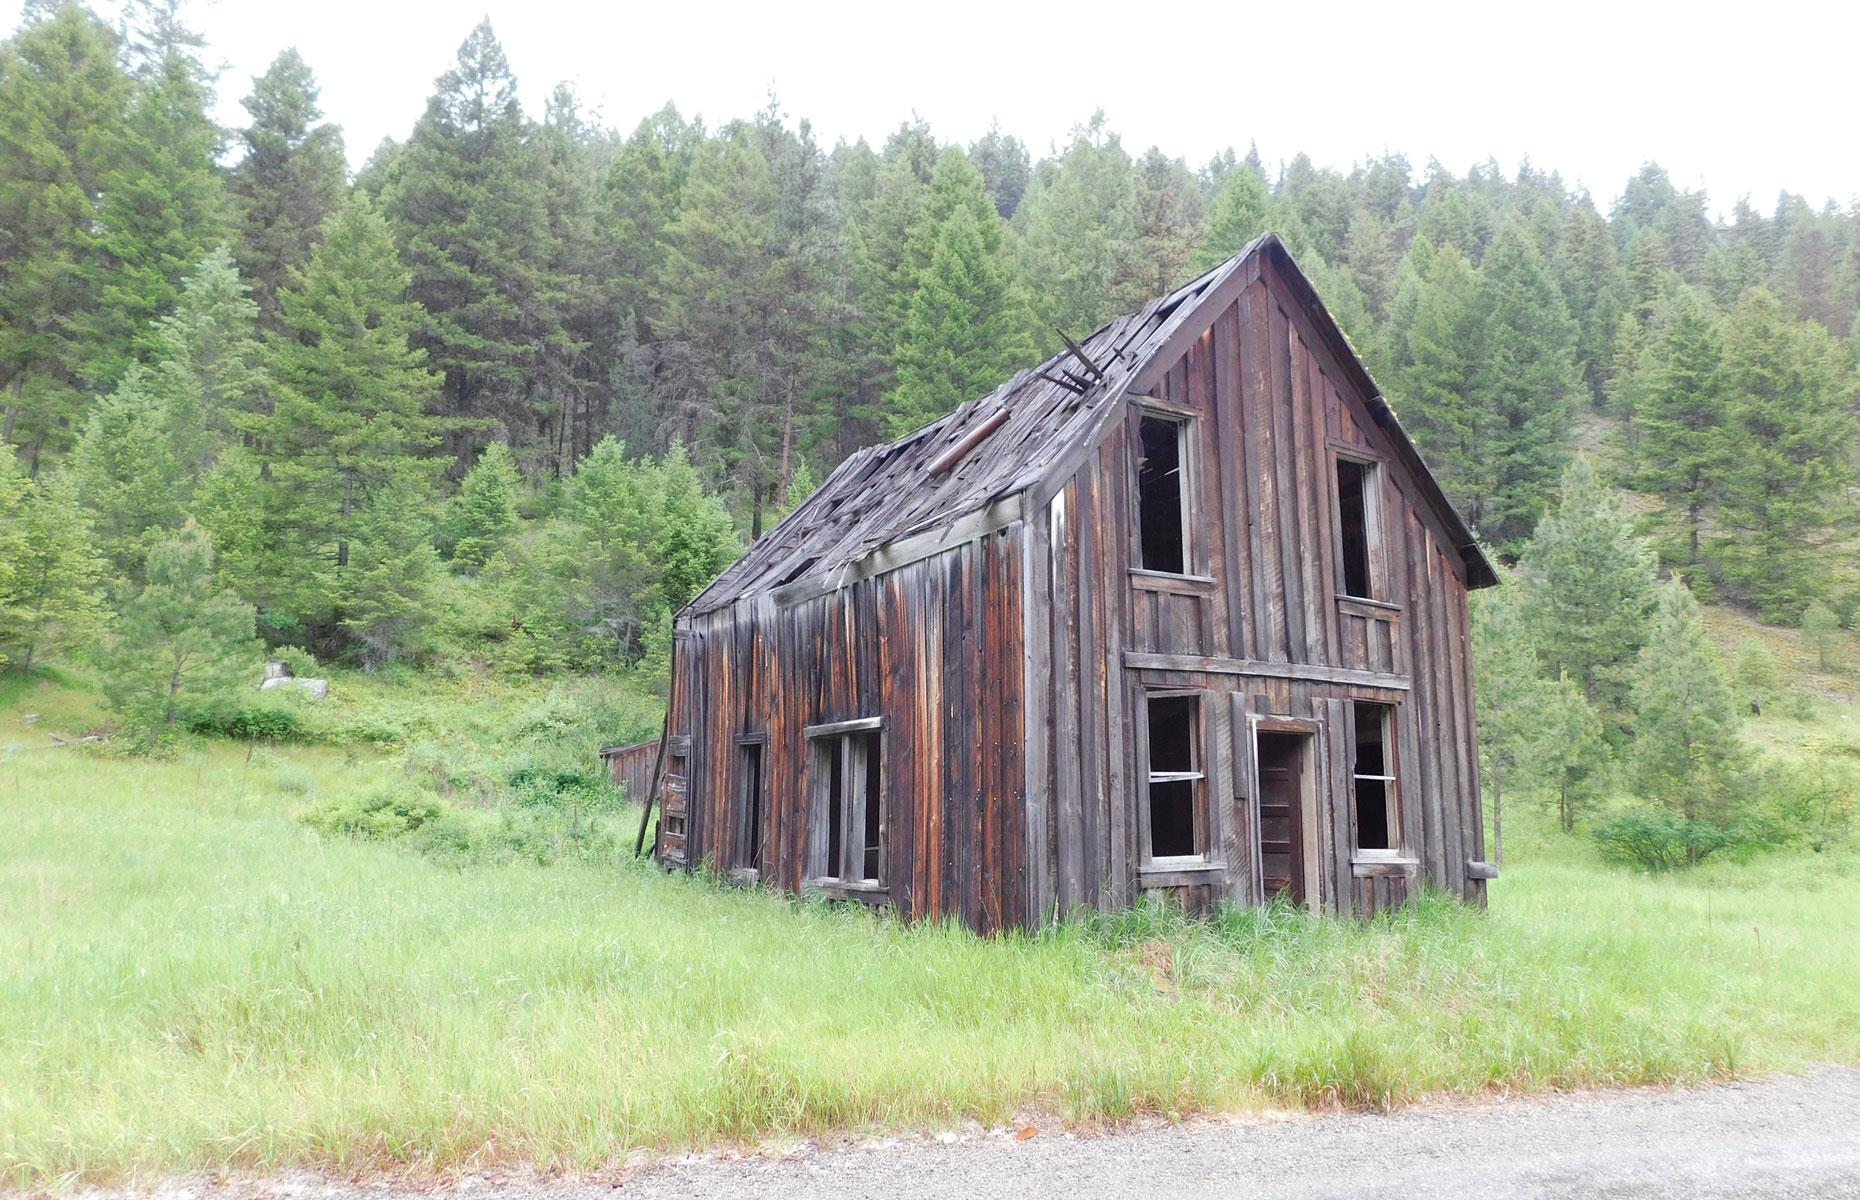 Slide 95 of 101: The mining town declined after nearby gold reserves had been depleted, and Bodie was all but abandoned by the 1940s. These days, a few decrepit wooden structures remain as a haunting tribute to the town.